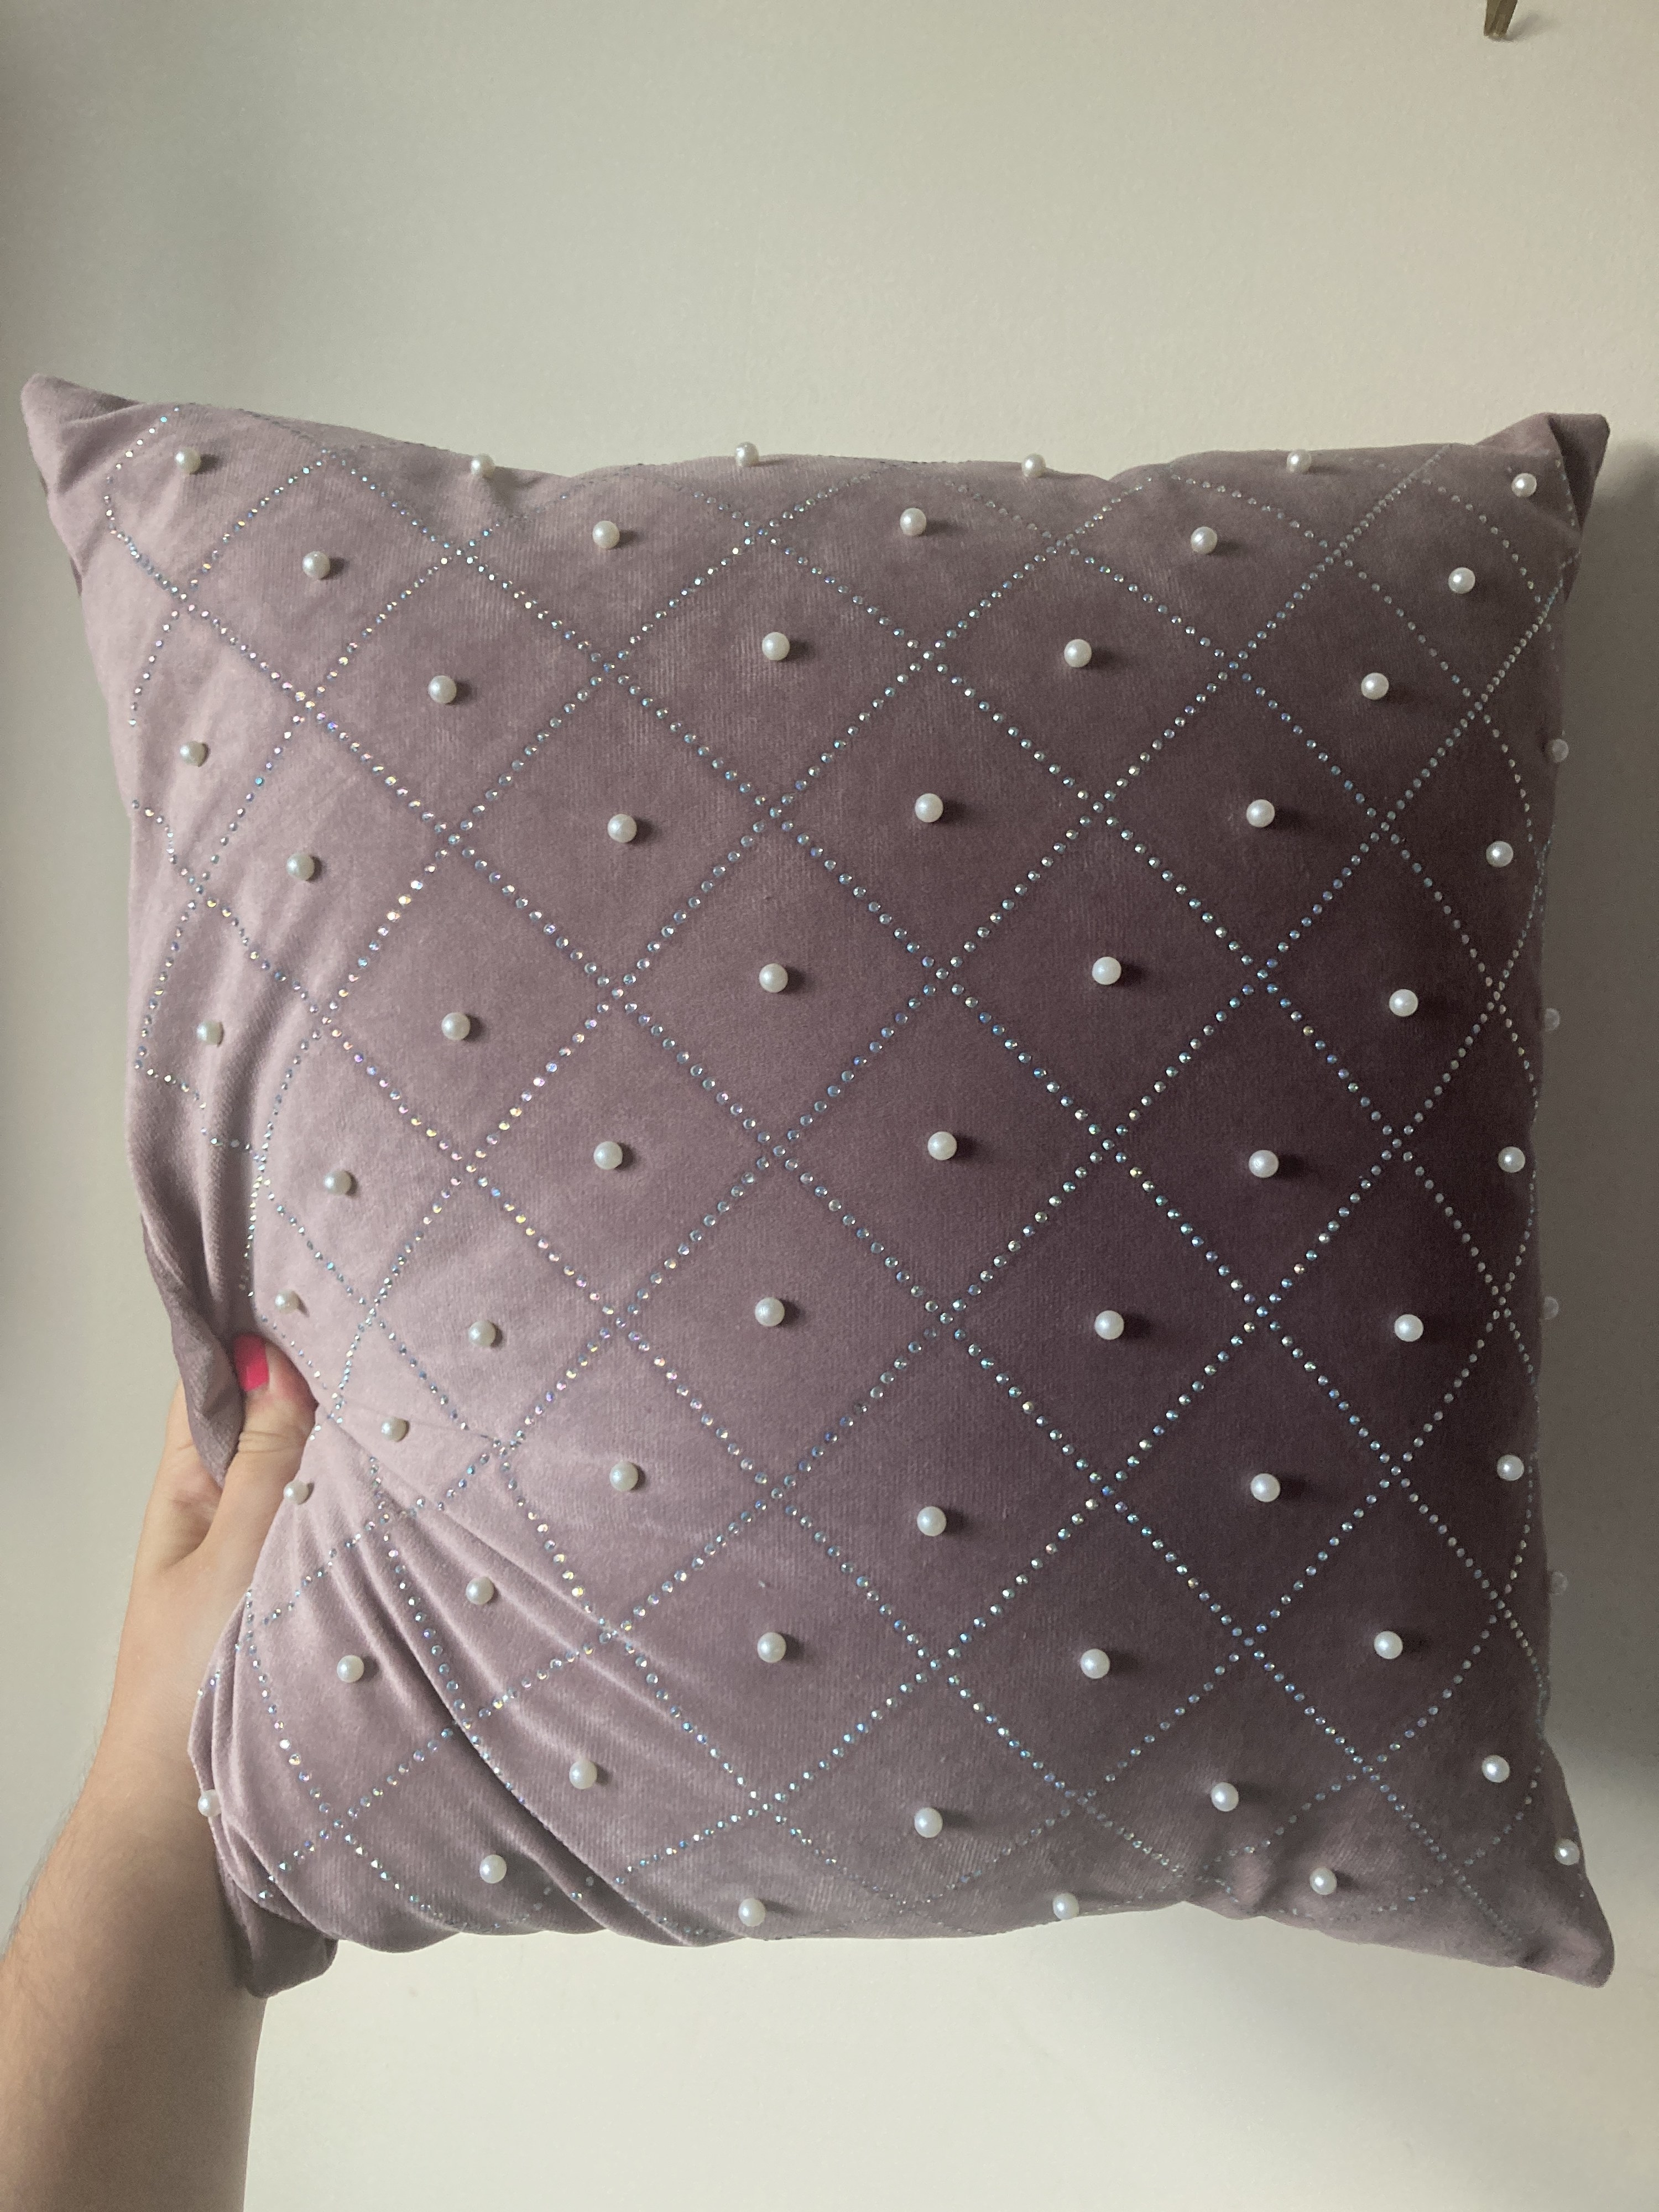 A pillow covered with little gems and fake pearls